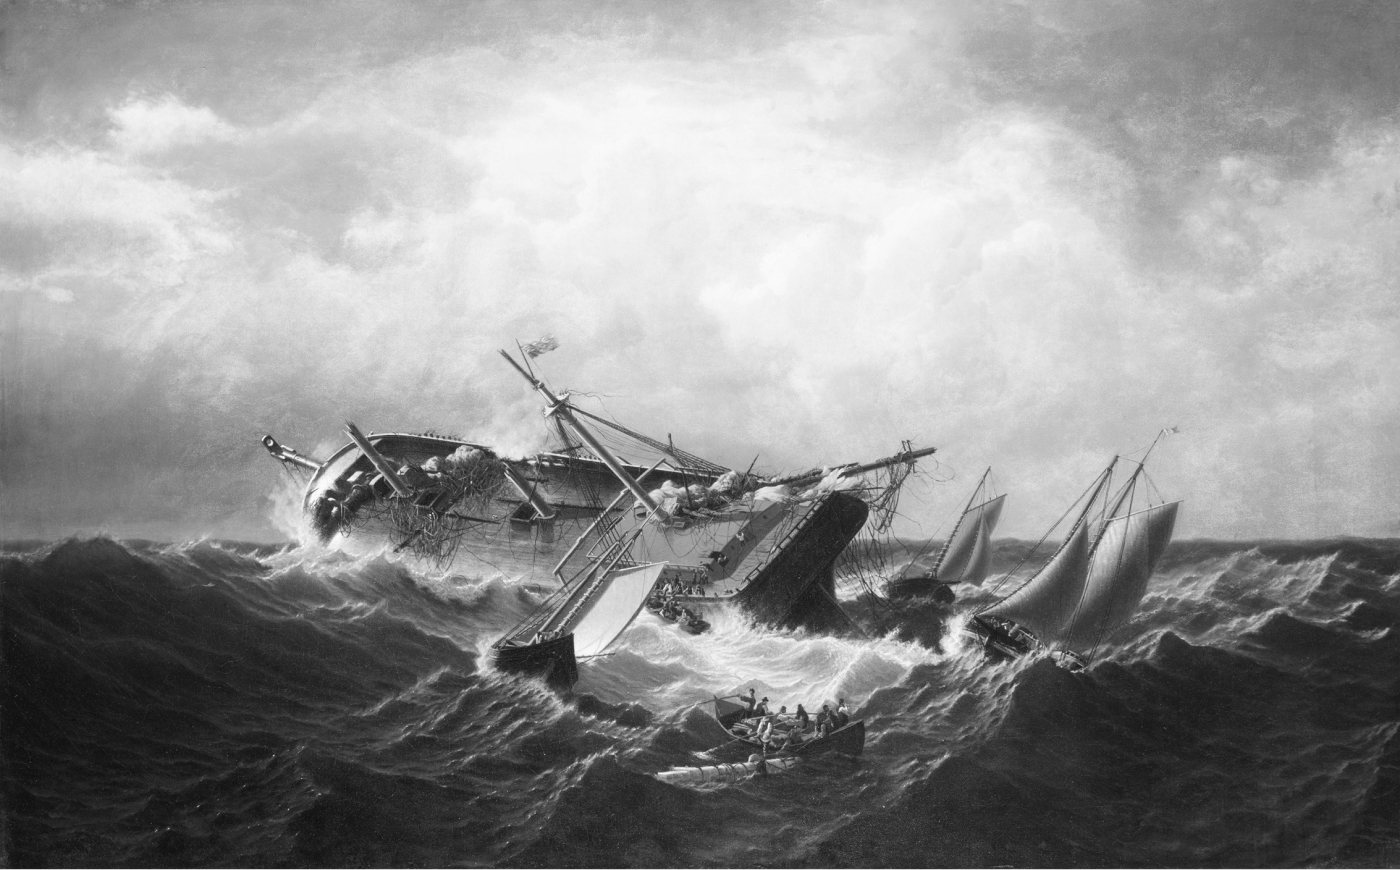 A painting by William Bradford of a shipwreck